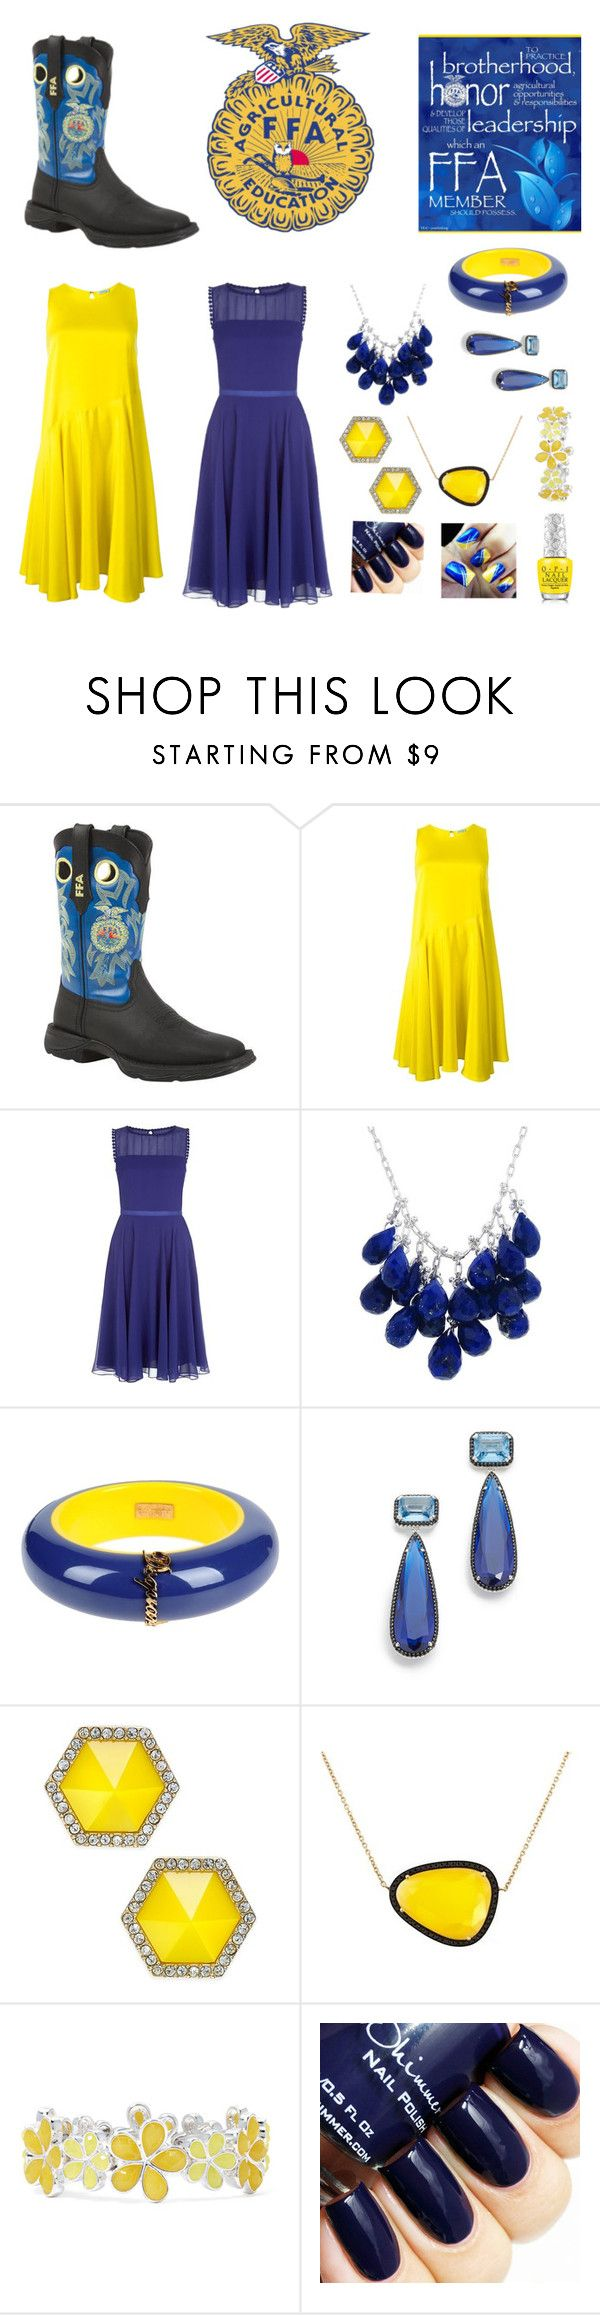 """This is National FFA week"" by maythehorsebewithyou ❤ liked on Polyvore featuring Durango, P.A.R.O.S.H., Dsquared2, Jarin K, ABS by Allen Schwartz, Christina Debs, Liz Claiborne, Hello Kitty, women's clothing and women"